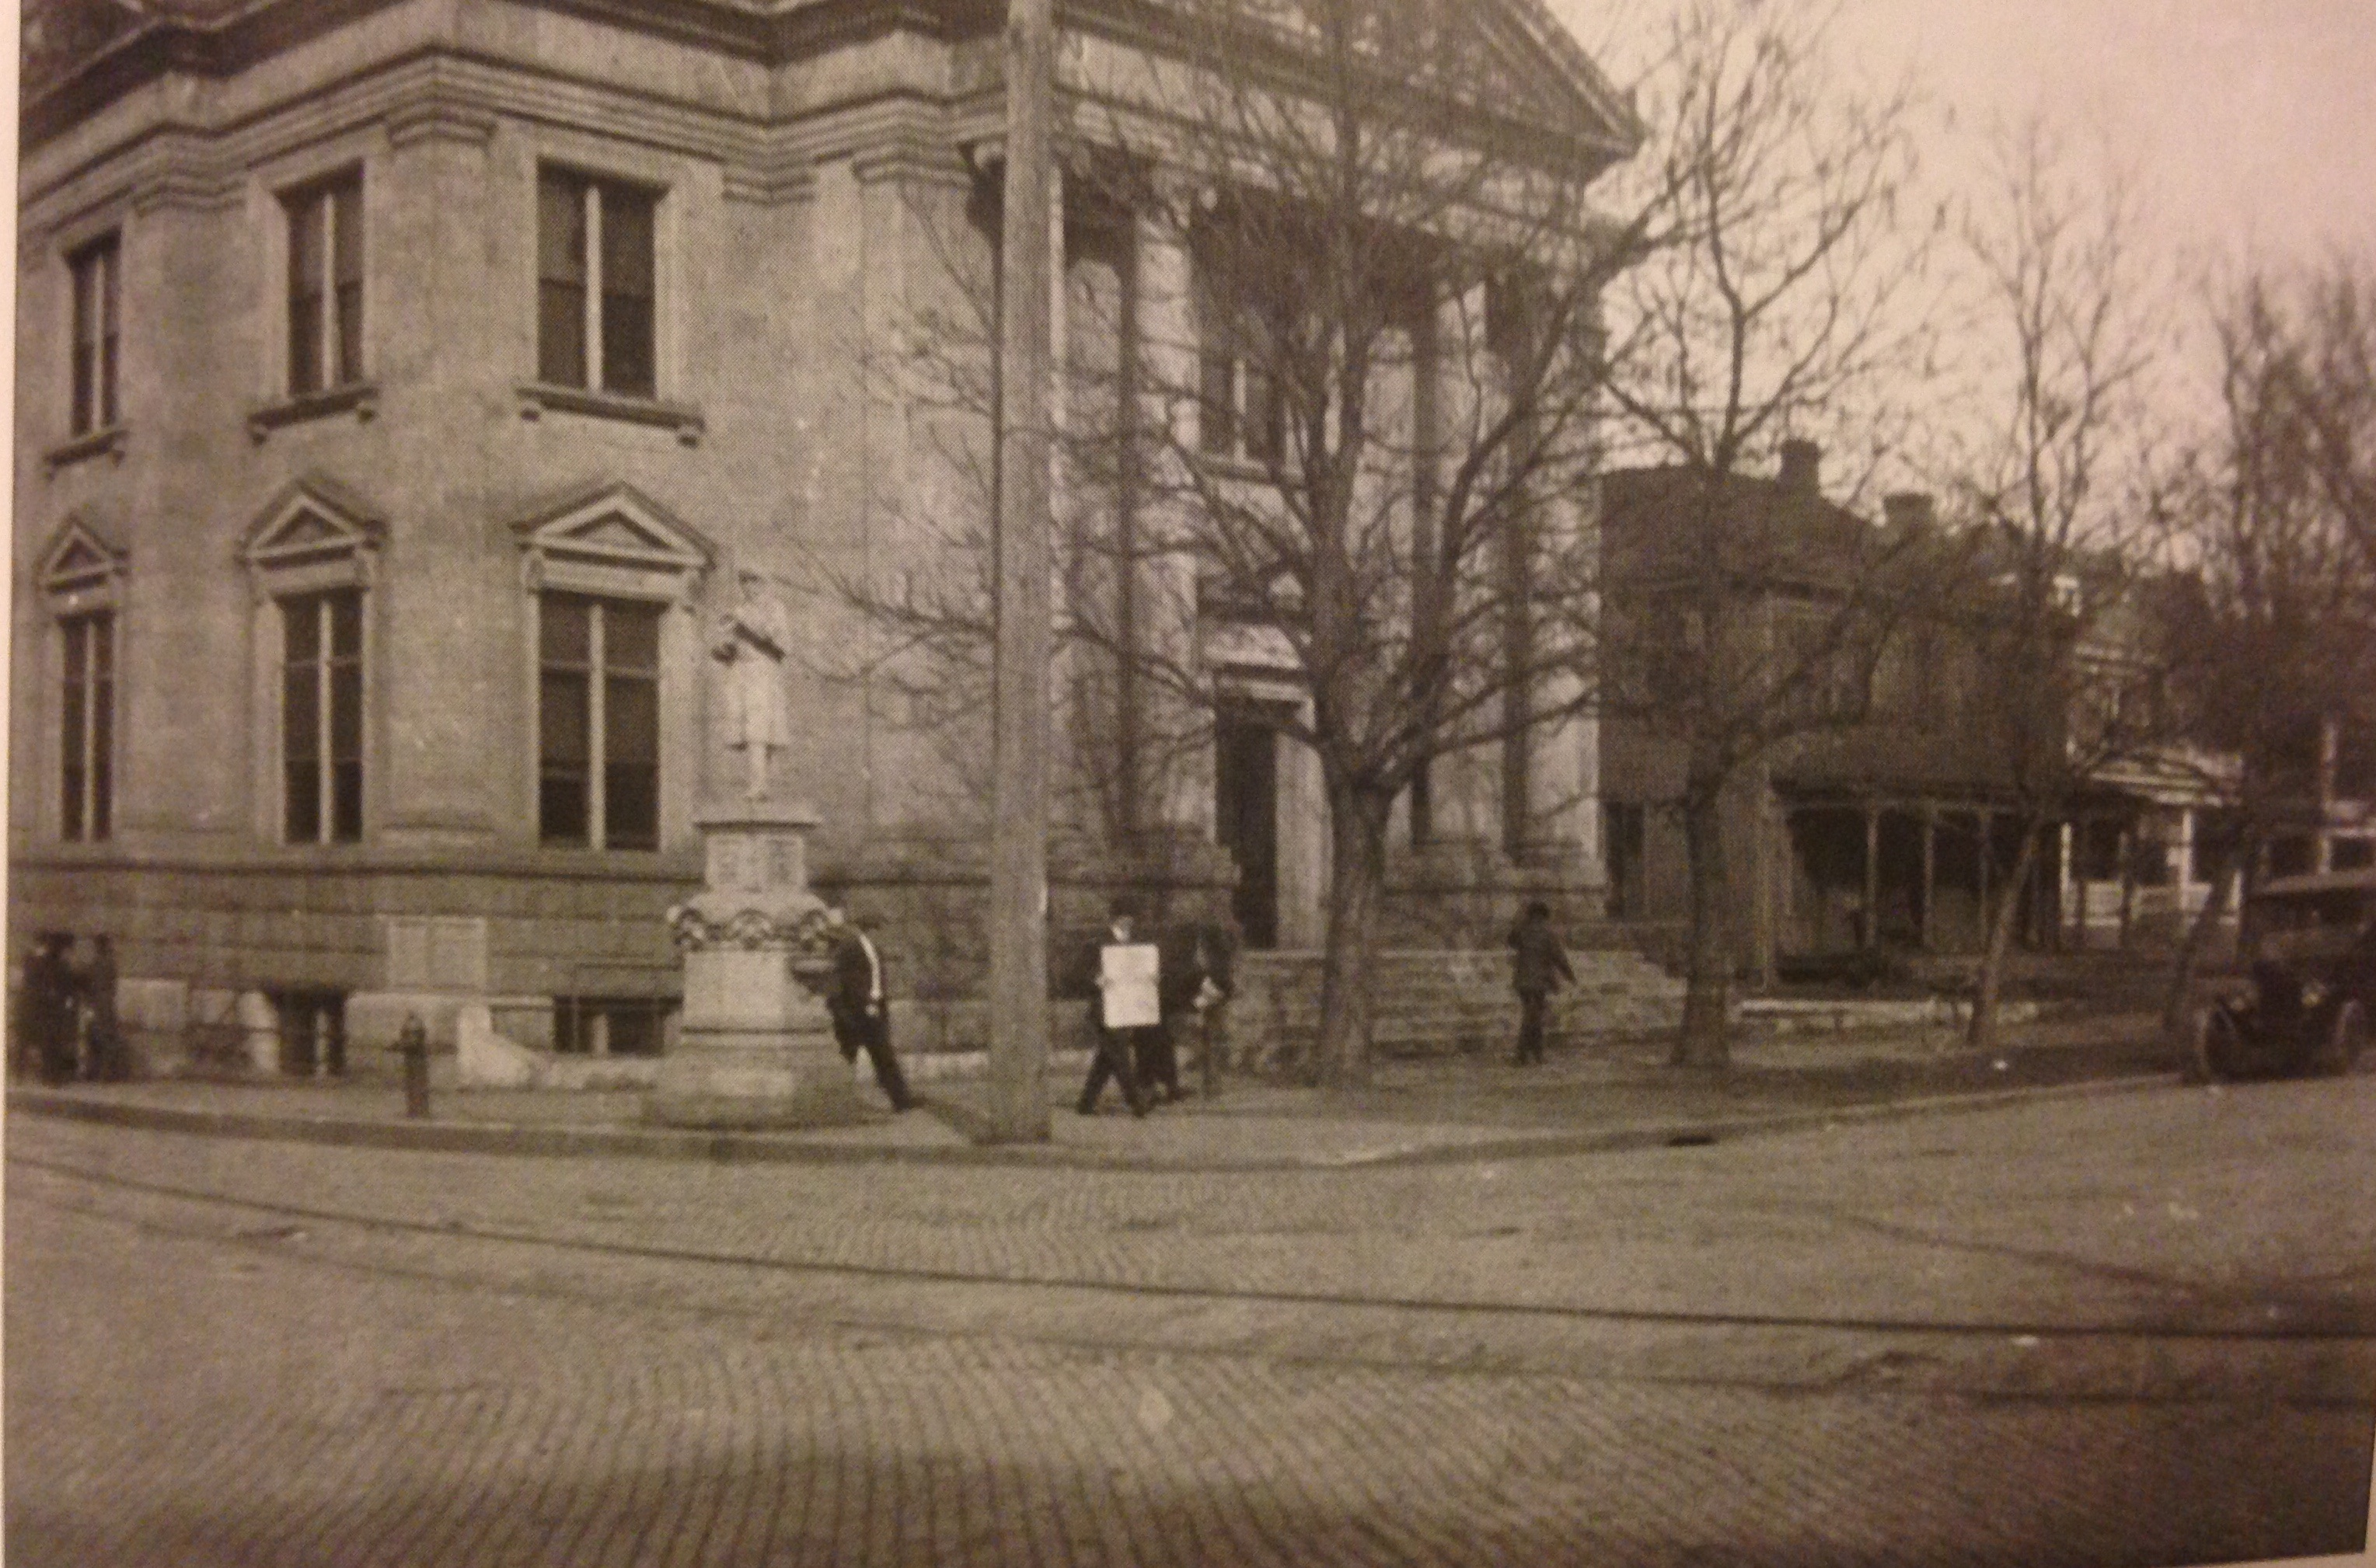 The lost statue in front of Carnegie Public Library